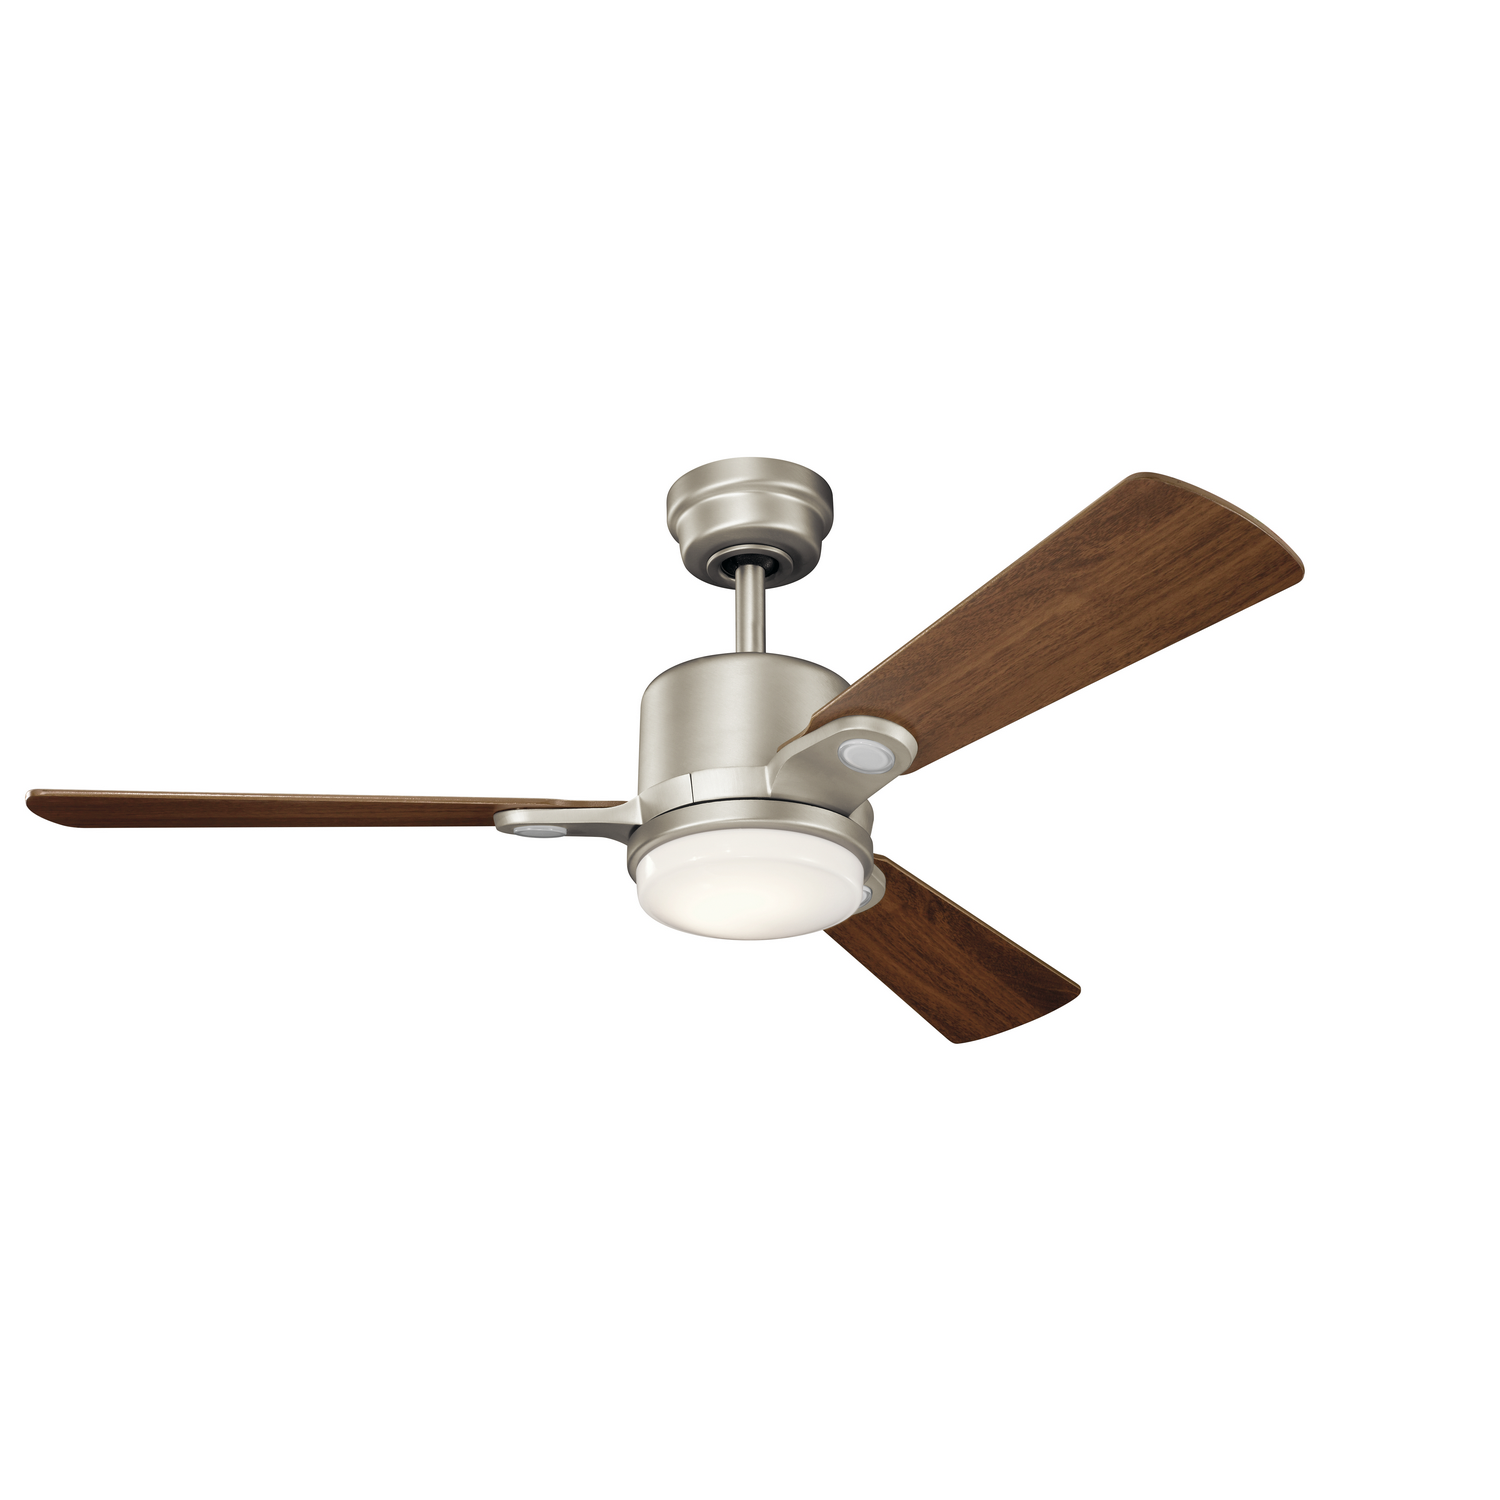 48 inchCeiling Fan from the Celino collection by Kichler 300304NI